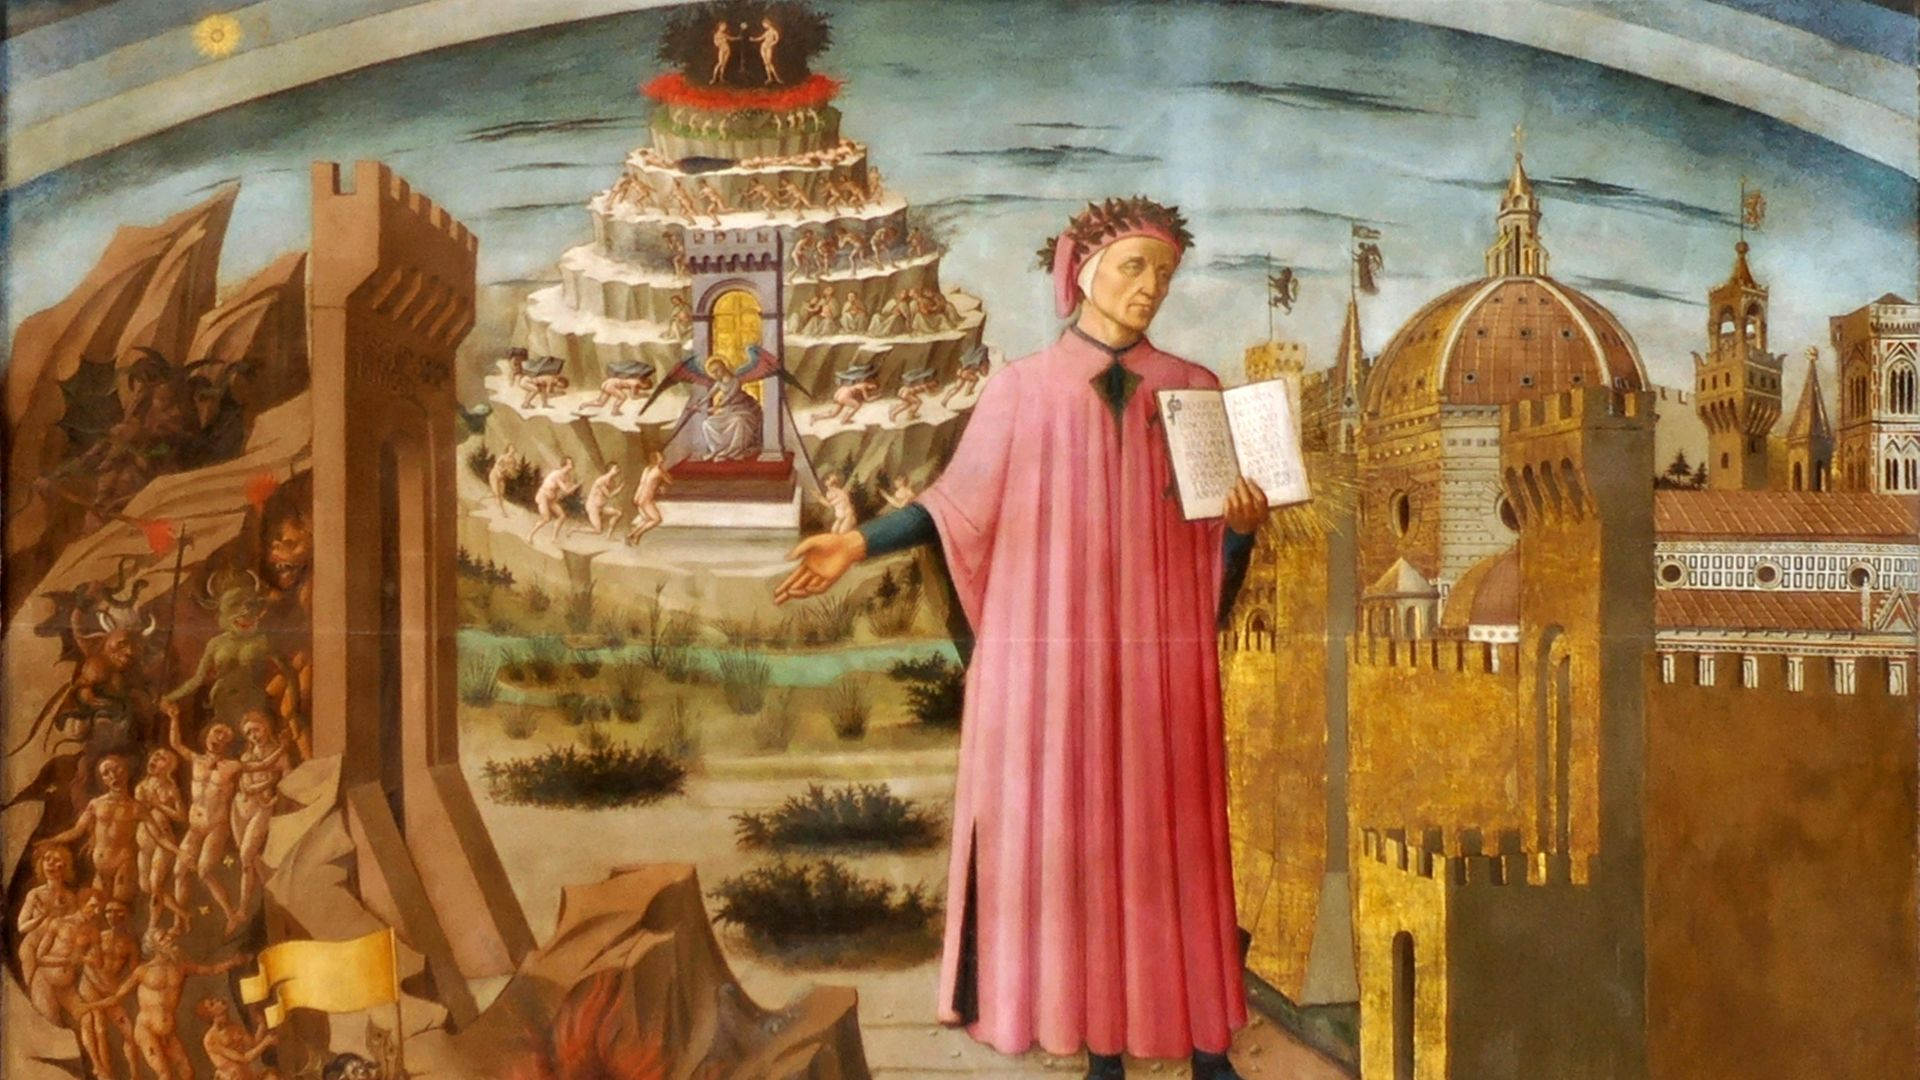 Dante and the Divine Comedy, from the Basilica of Santa Maria del Fiore, Florence - Credit: Heritage Images/Getty Images